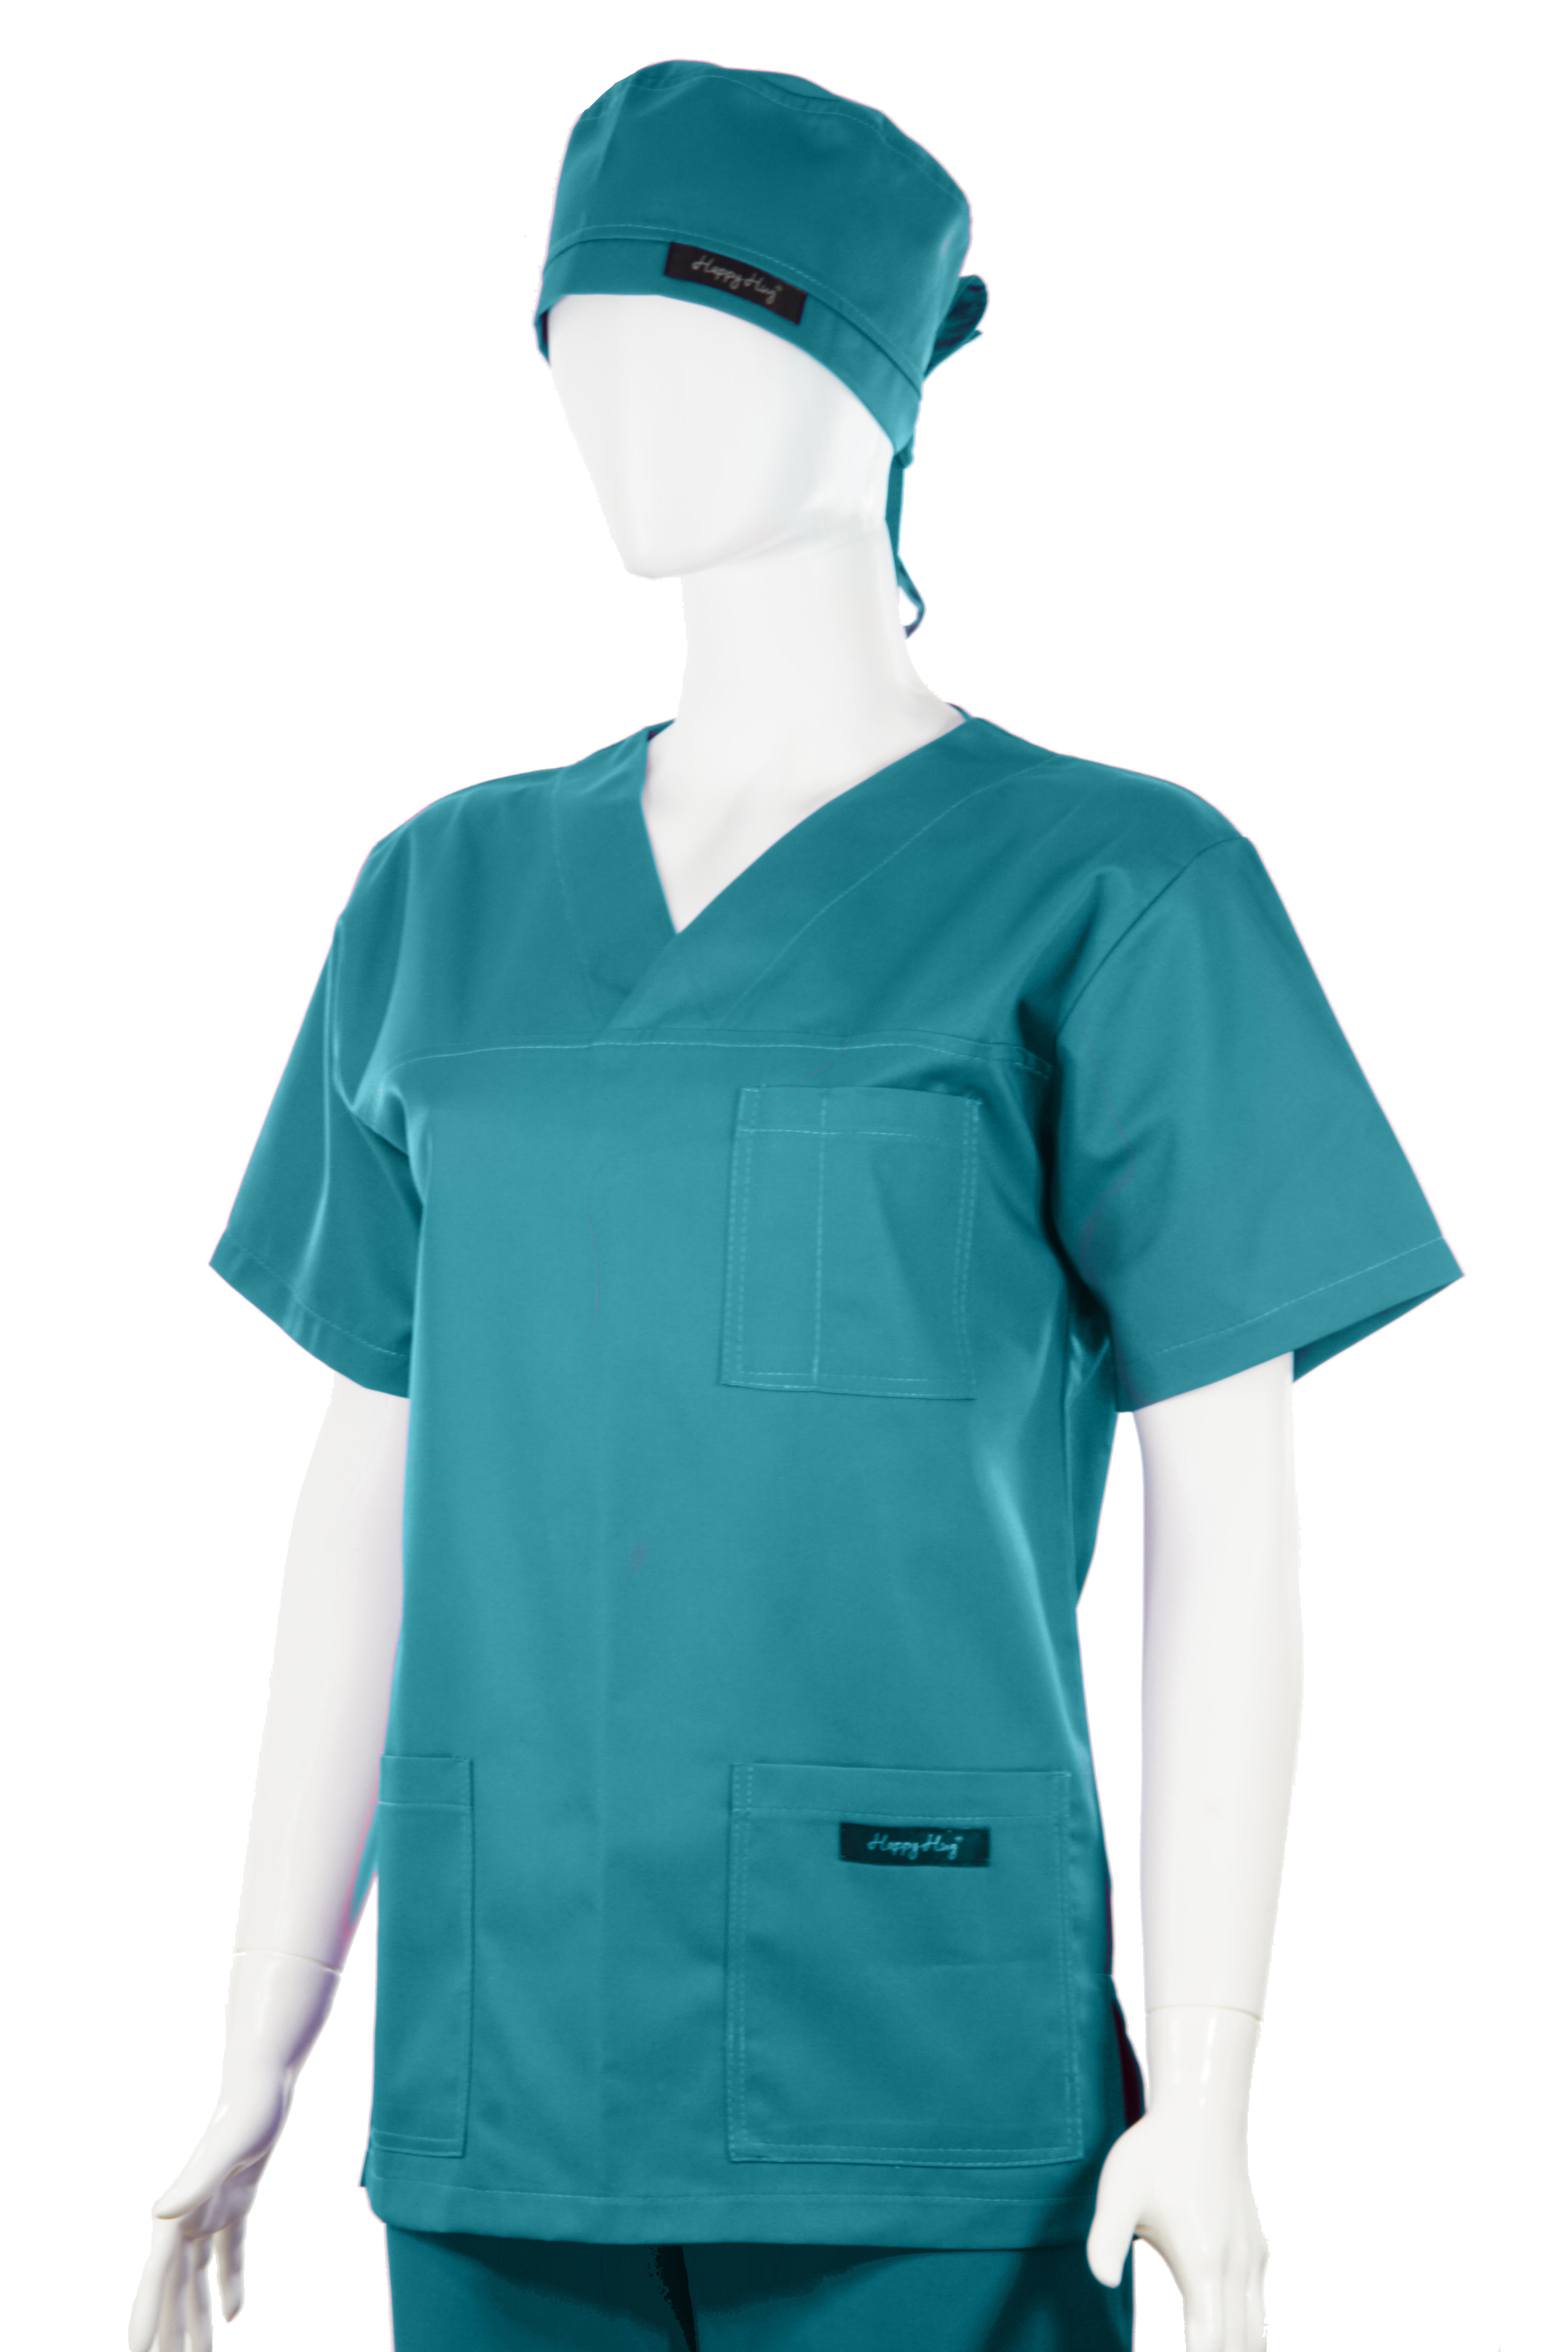 Costum Medical Unisex teal 2XL 2XL 2